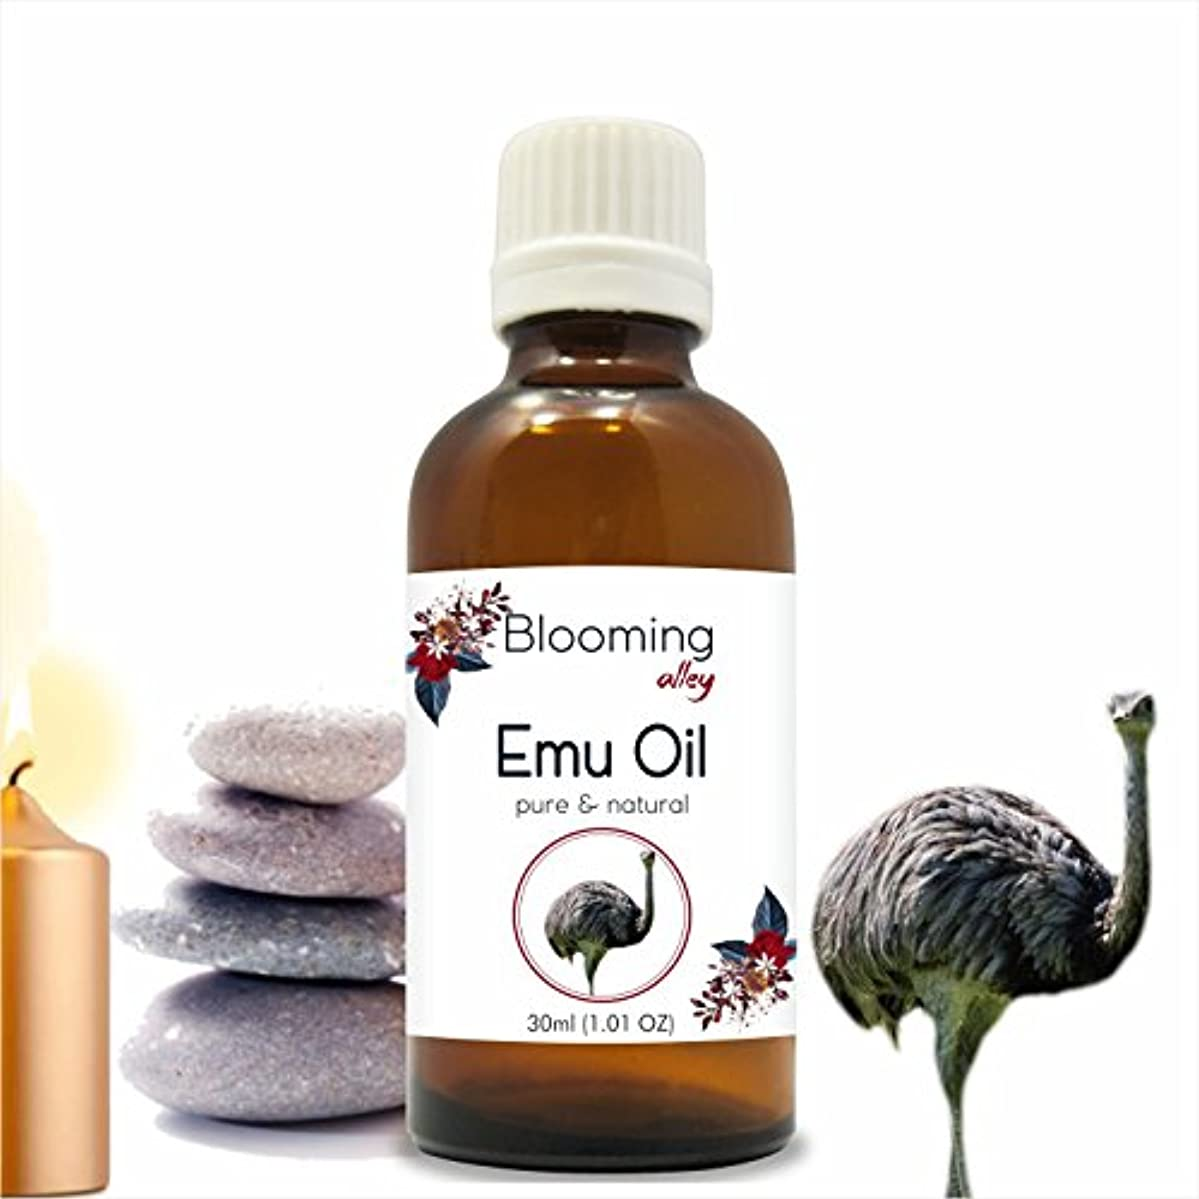 Emu Oil 30 ml or 1.0 Fl Oz by Blooming Alley